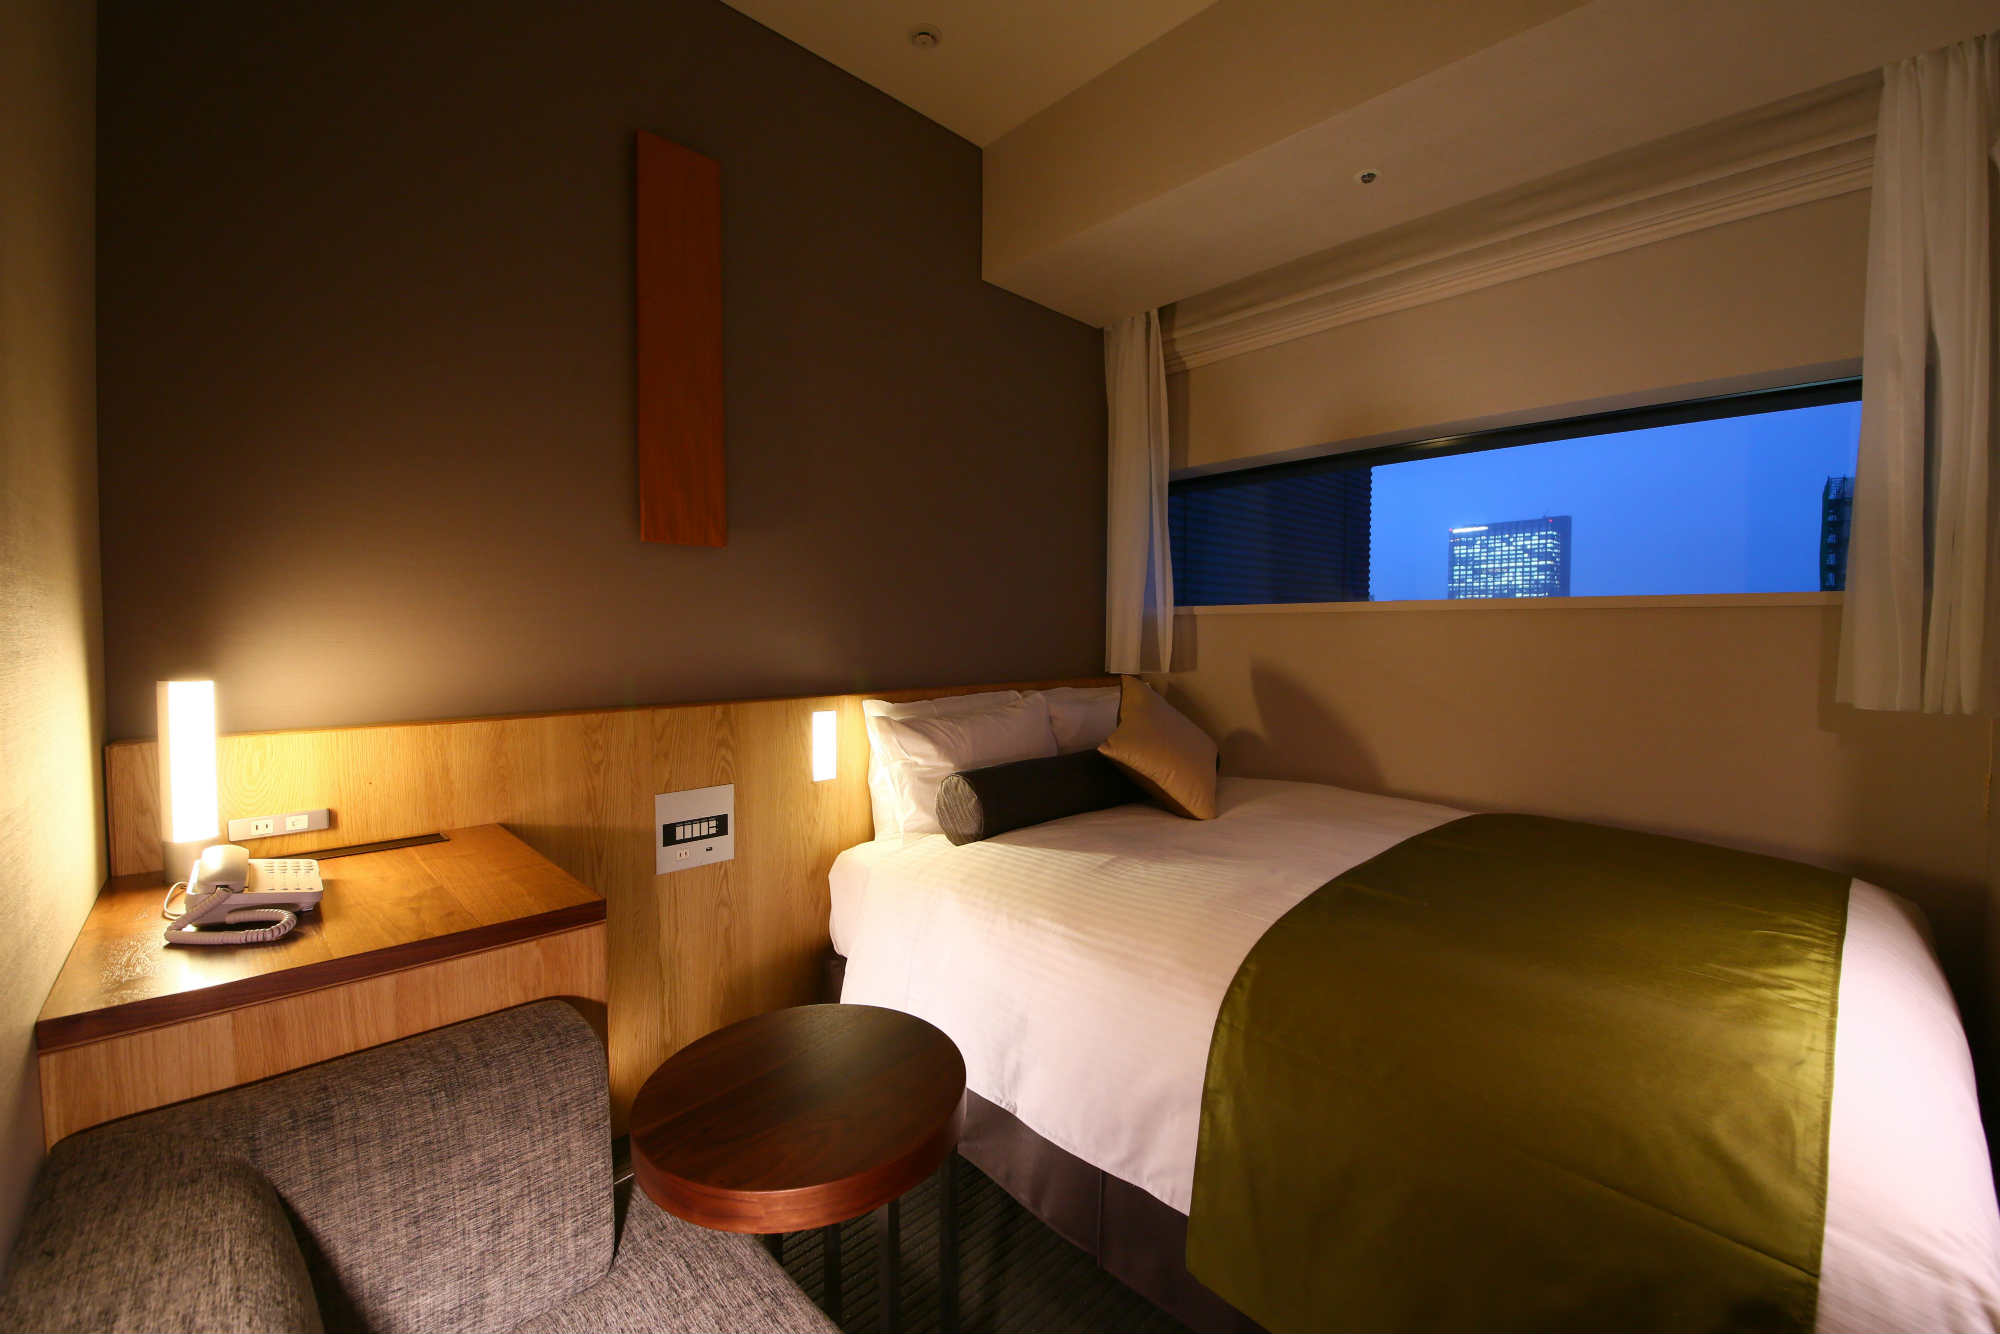 Guest Rooms - Standard Single Tokyo Hotel - Gracery Shinjuku City ...